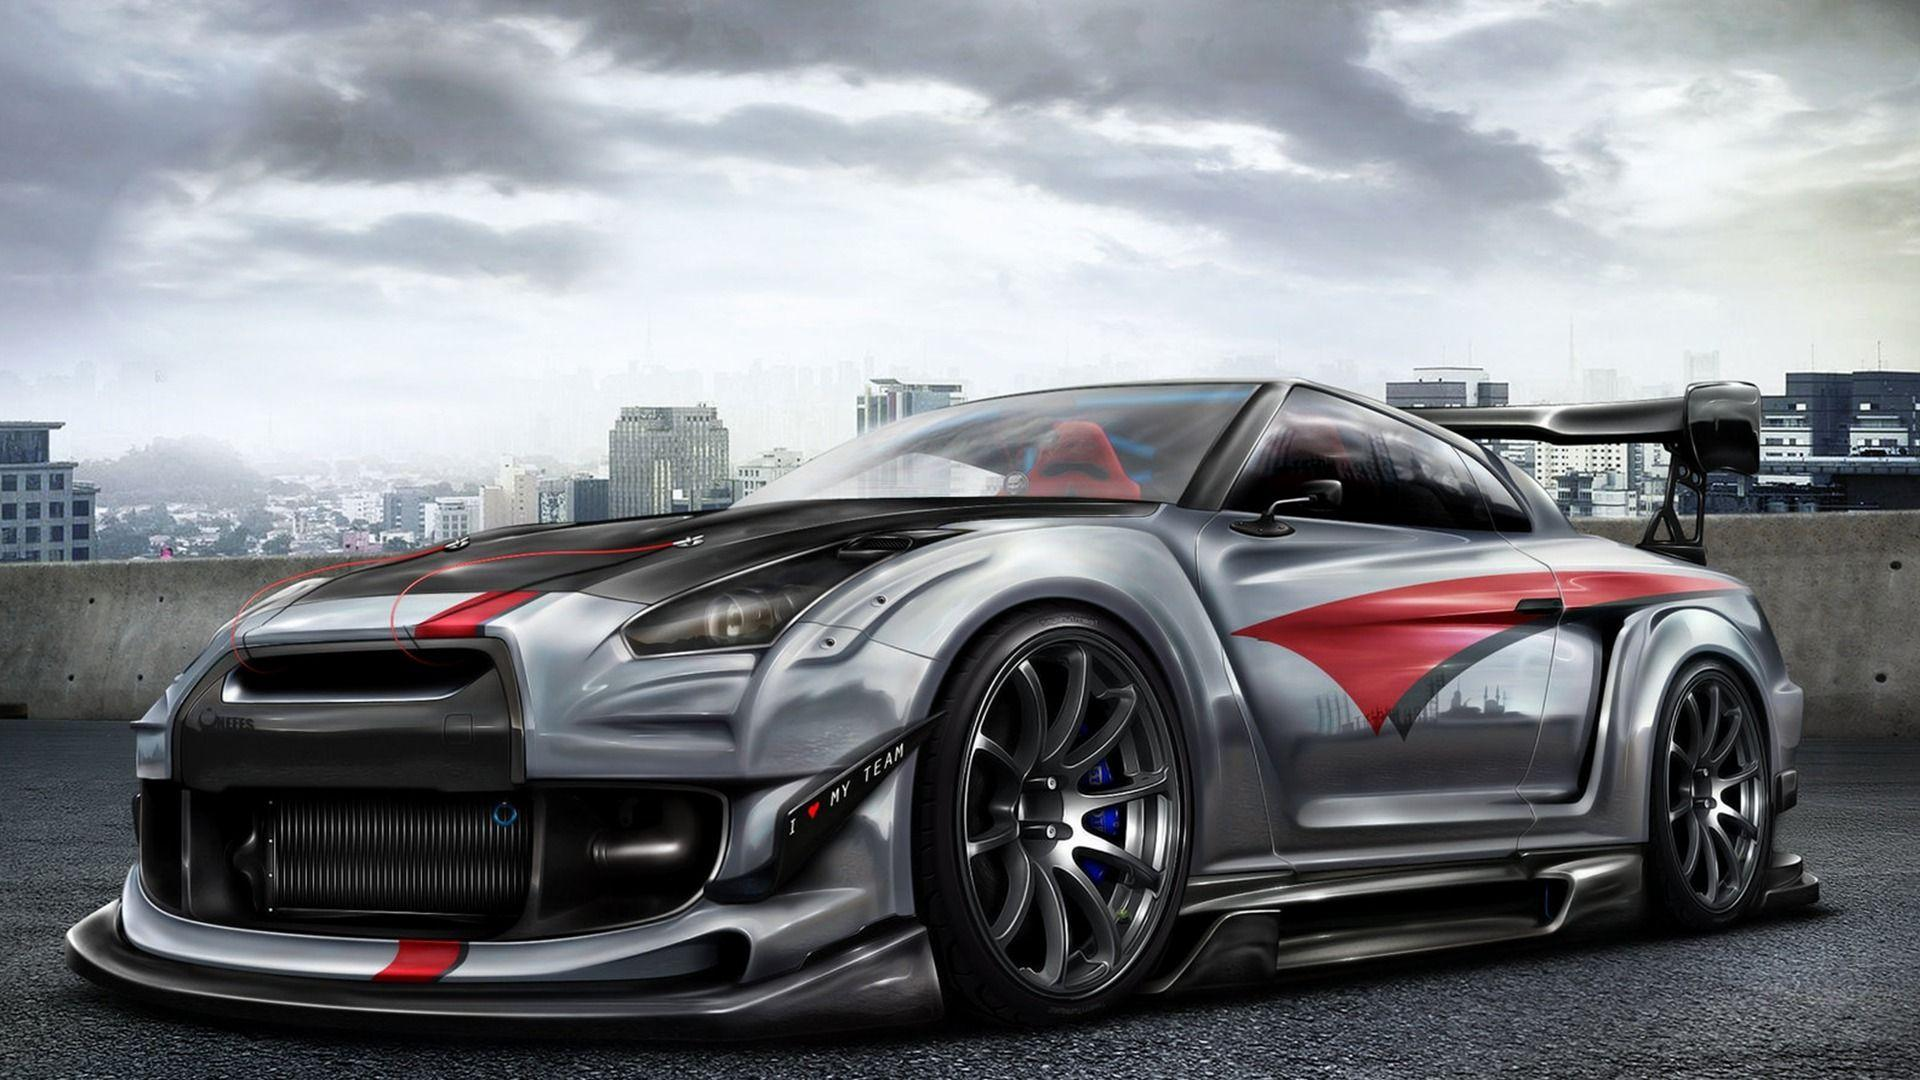 Nissan Gtr 35 Wallpapers Wallpaper Cave